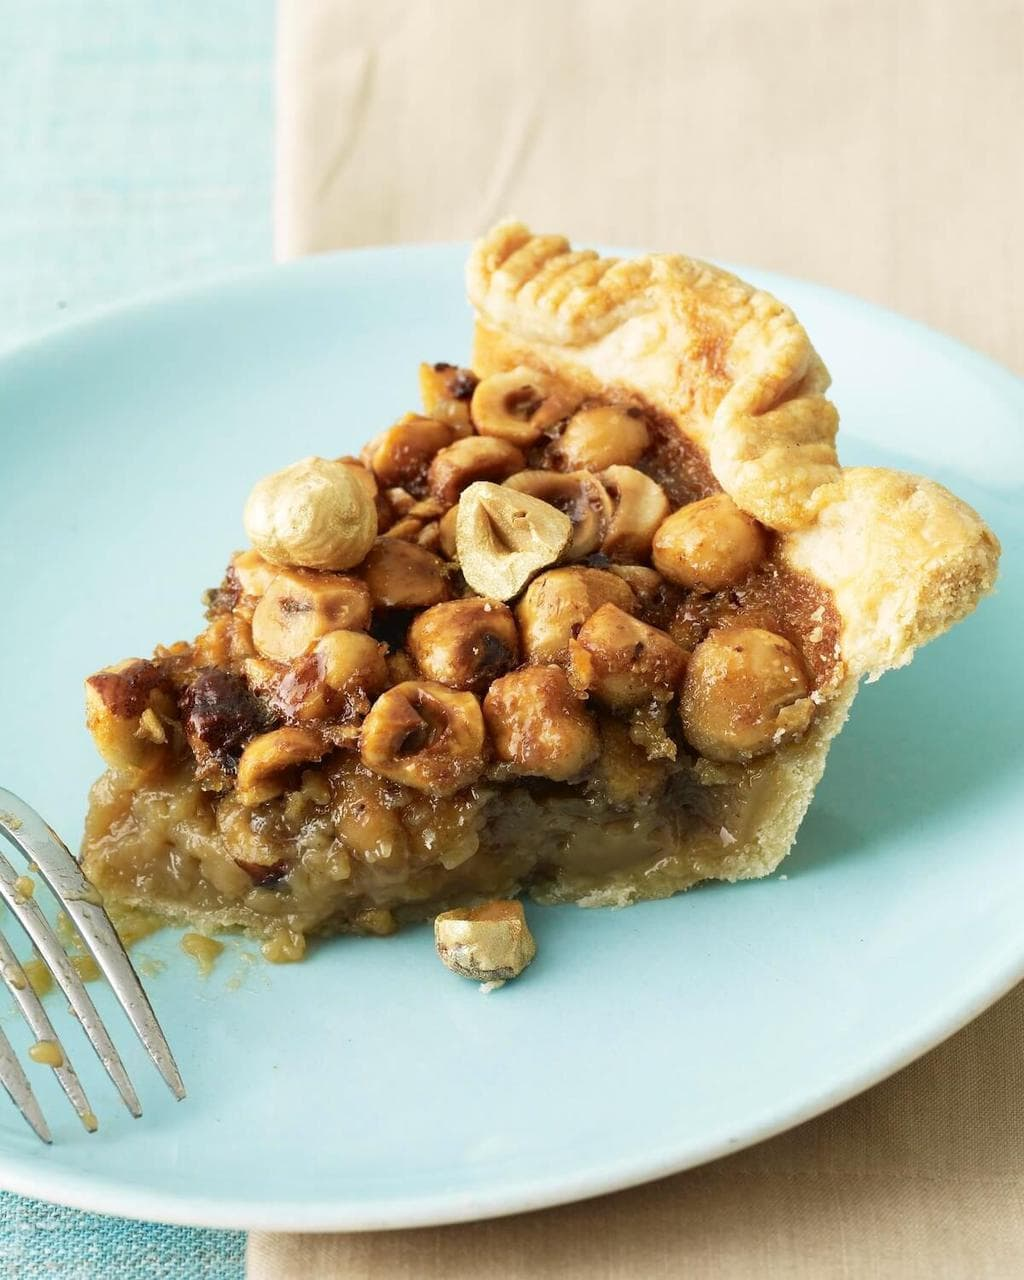 slice of maple caramel pie with hazelnuts